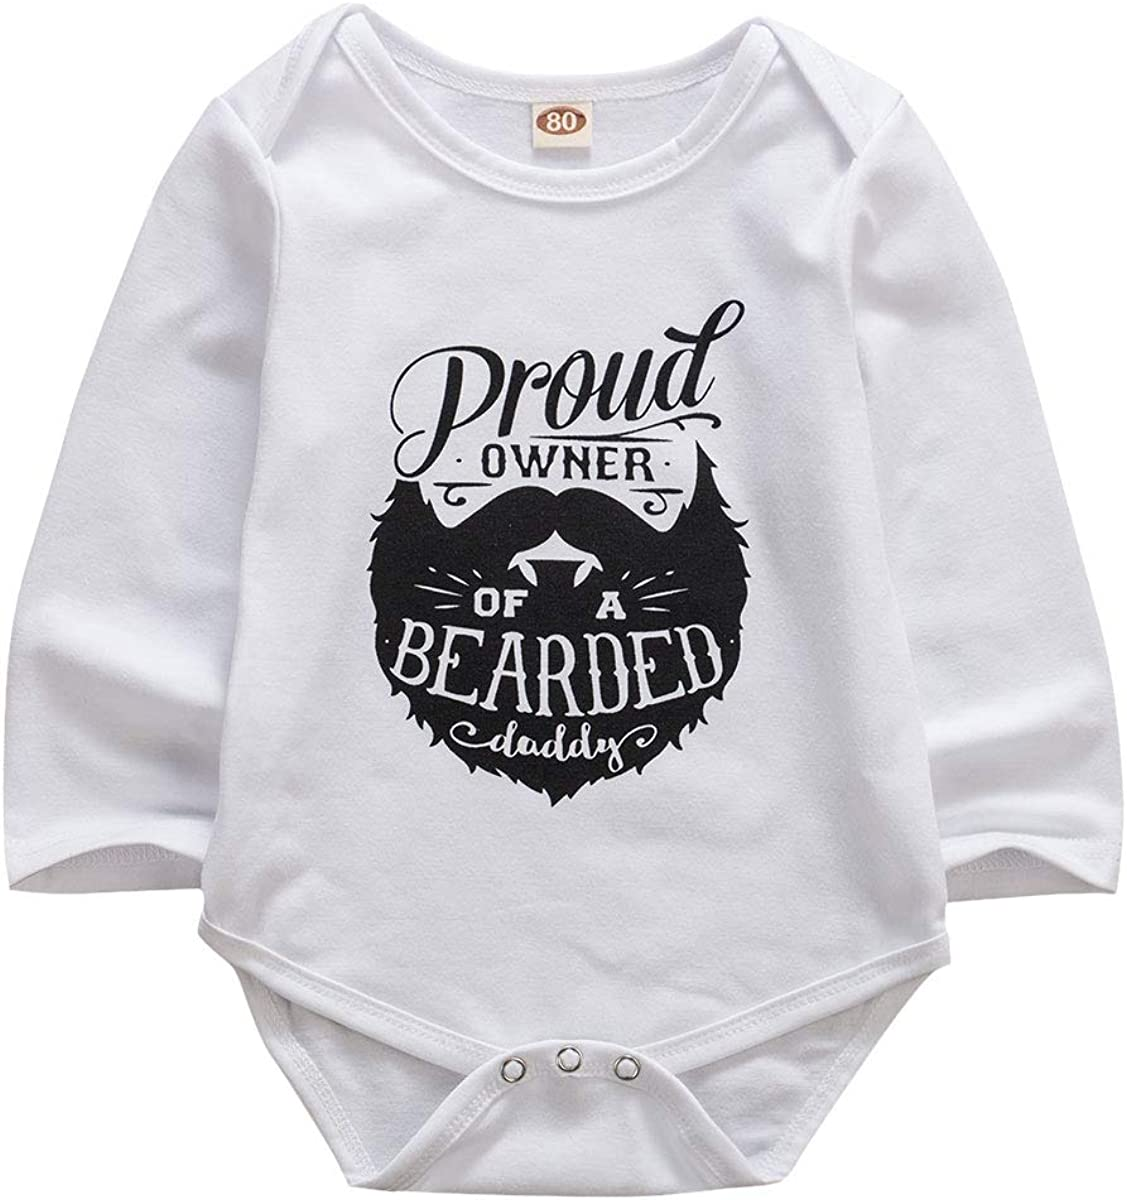 BEDHRT Newborn Infant Baby Boys Girl Romper Funny Letter Jumpsuit Bodysuit Outfits Clothes One Piece